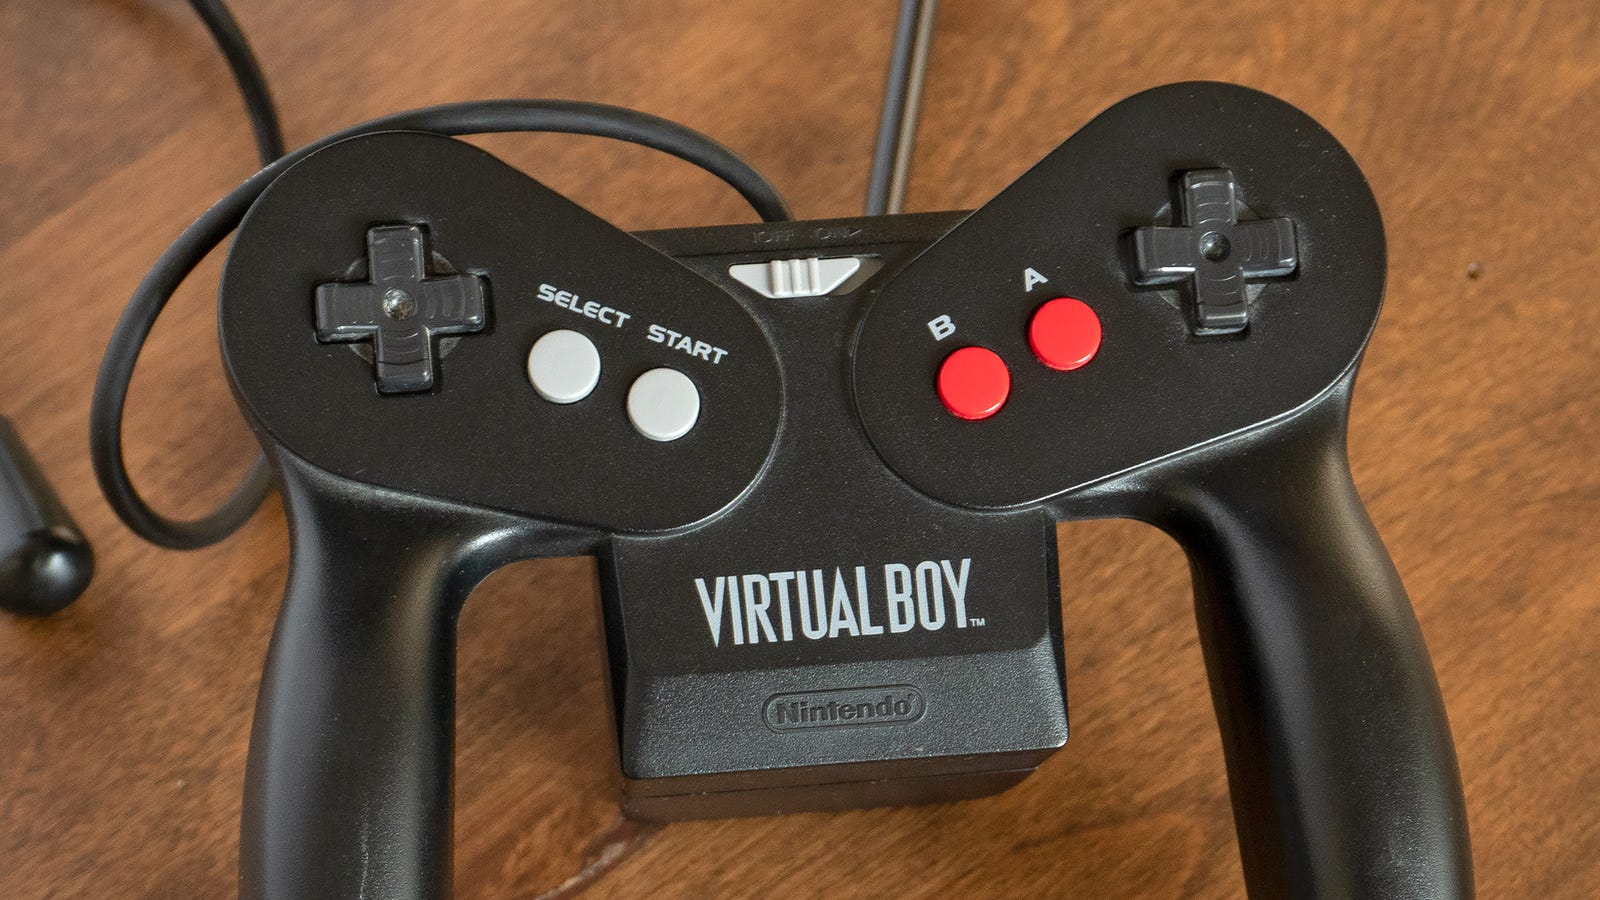 The Virtual Boy's controller also housed the six AA batteries it ran on, adding unnecessary weight.